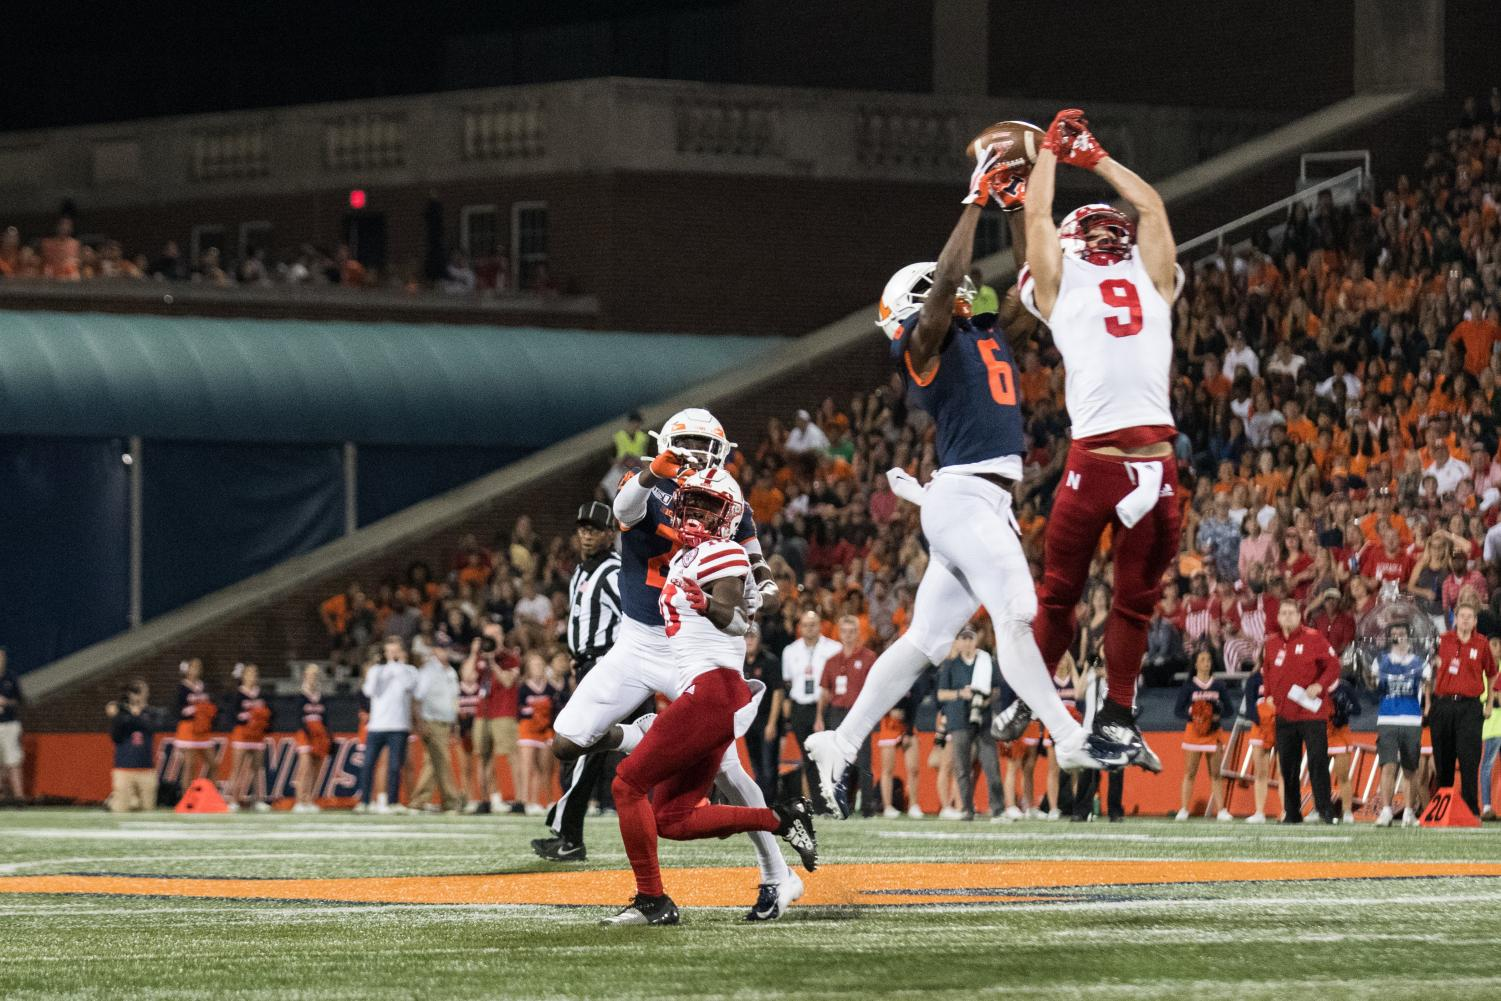 Illinois defense breaks up a pass on Saturday. The Illini led 21-14 at halftime against the Cornhuskers before choking in the fourth quarter.